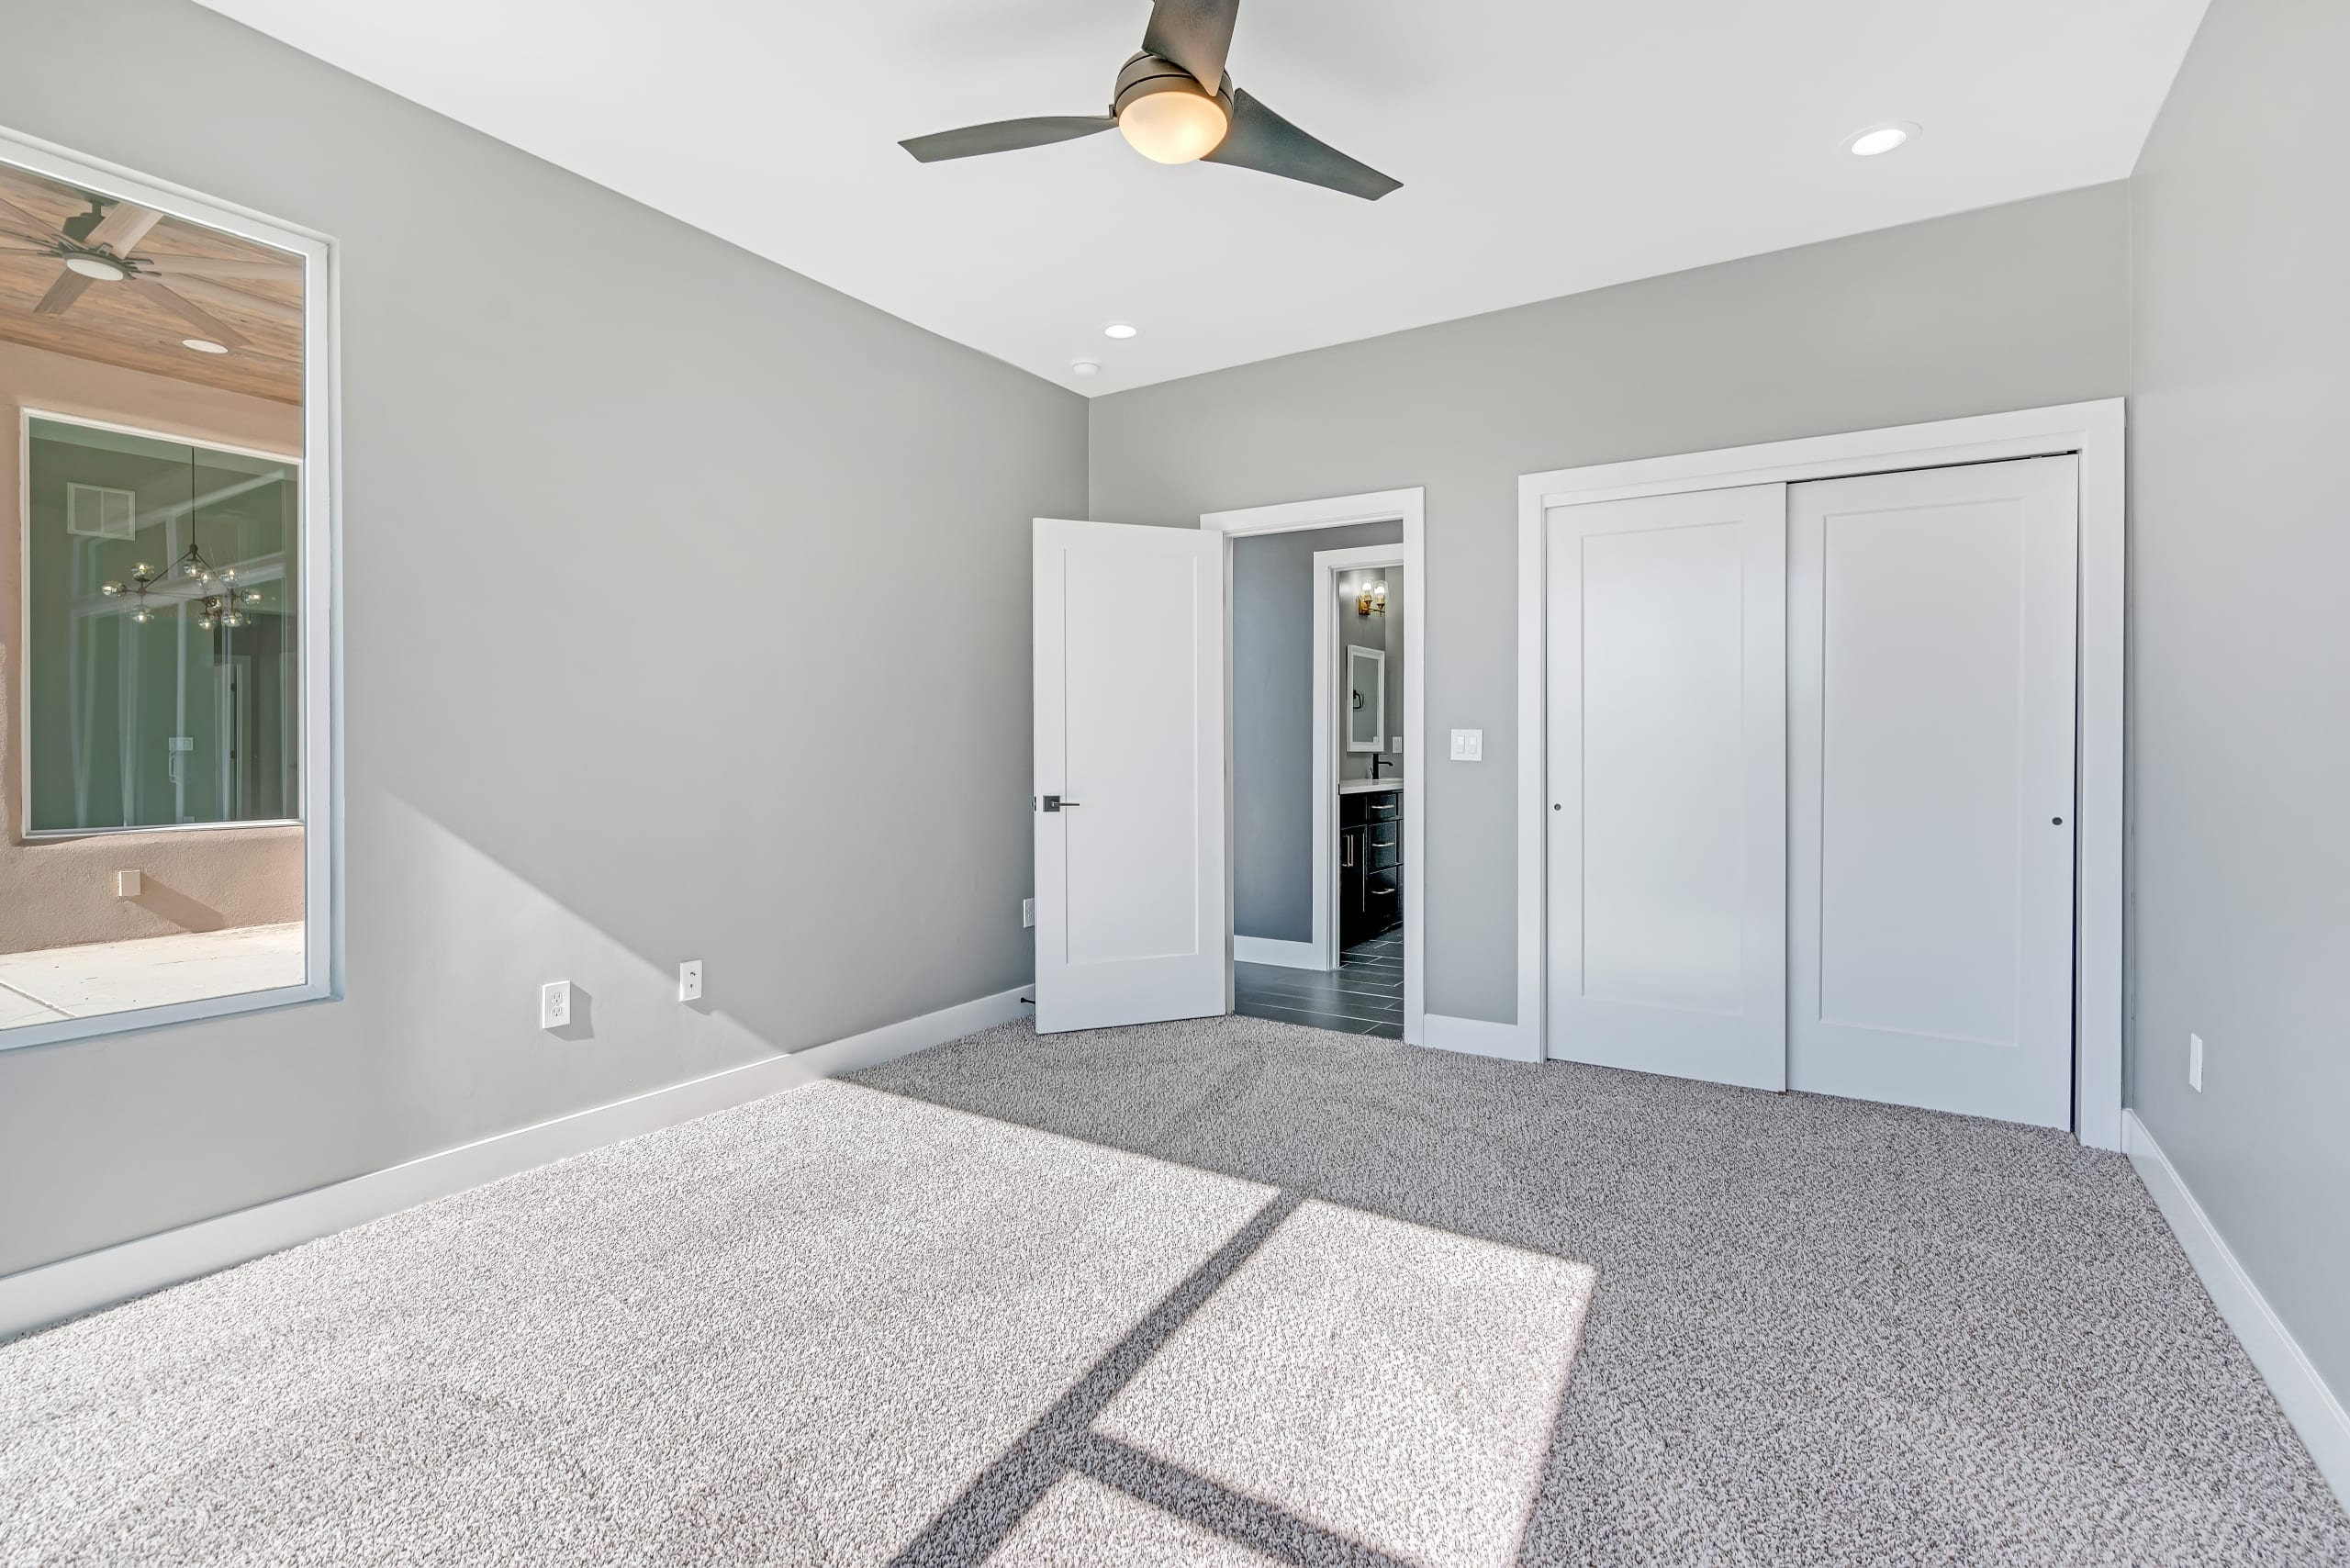 Spare Bedroom - View from Corner into Hallway